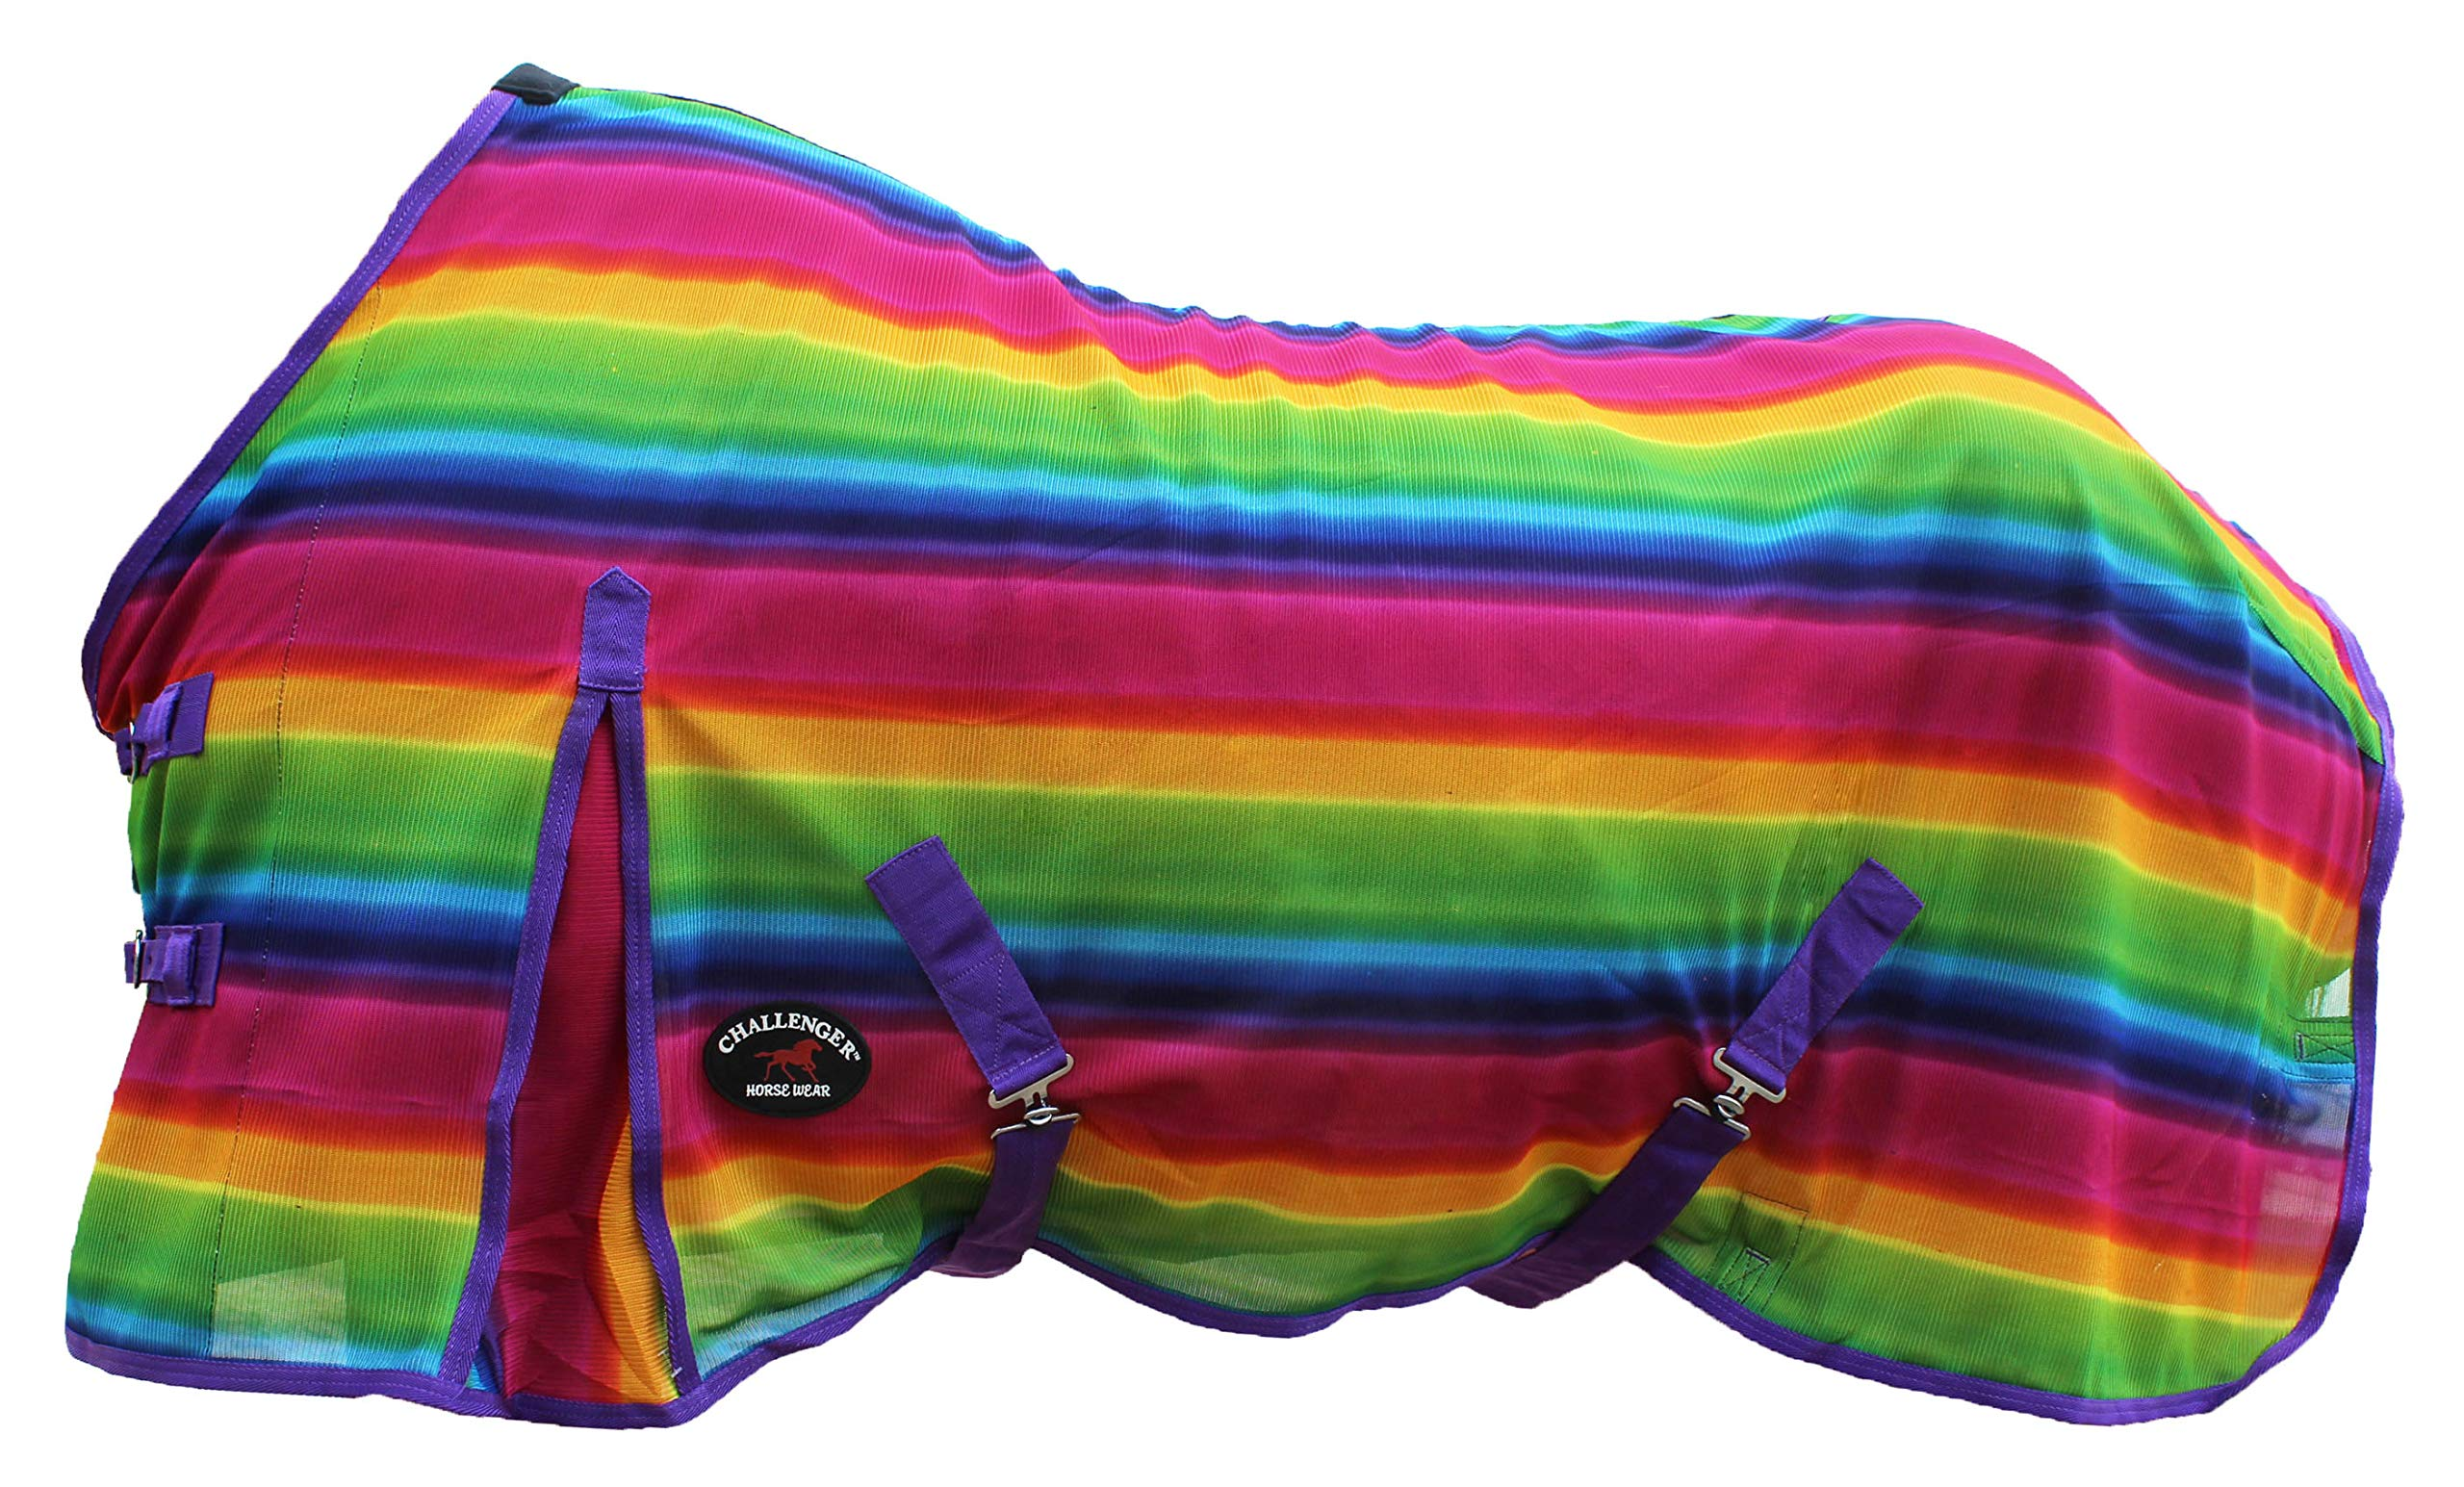 Challenger Horsewear 66'' Horse Fly Sheet Summer Spring Airflow Mesh UV Rainbow 7343 by Challenger Horsewear